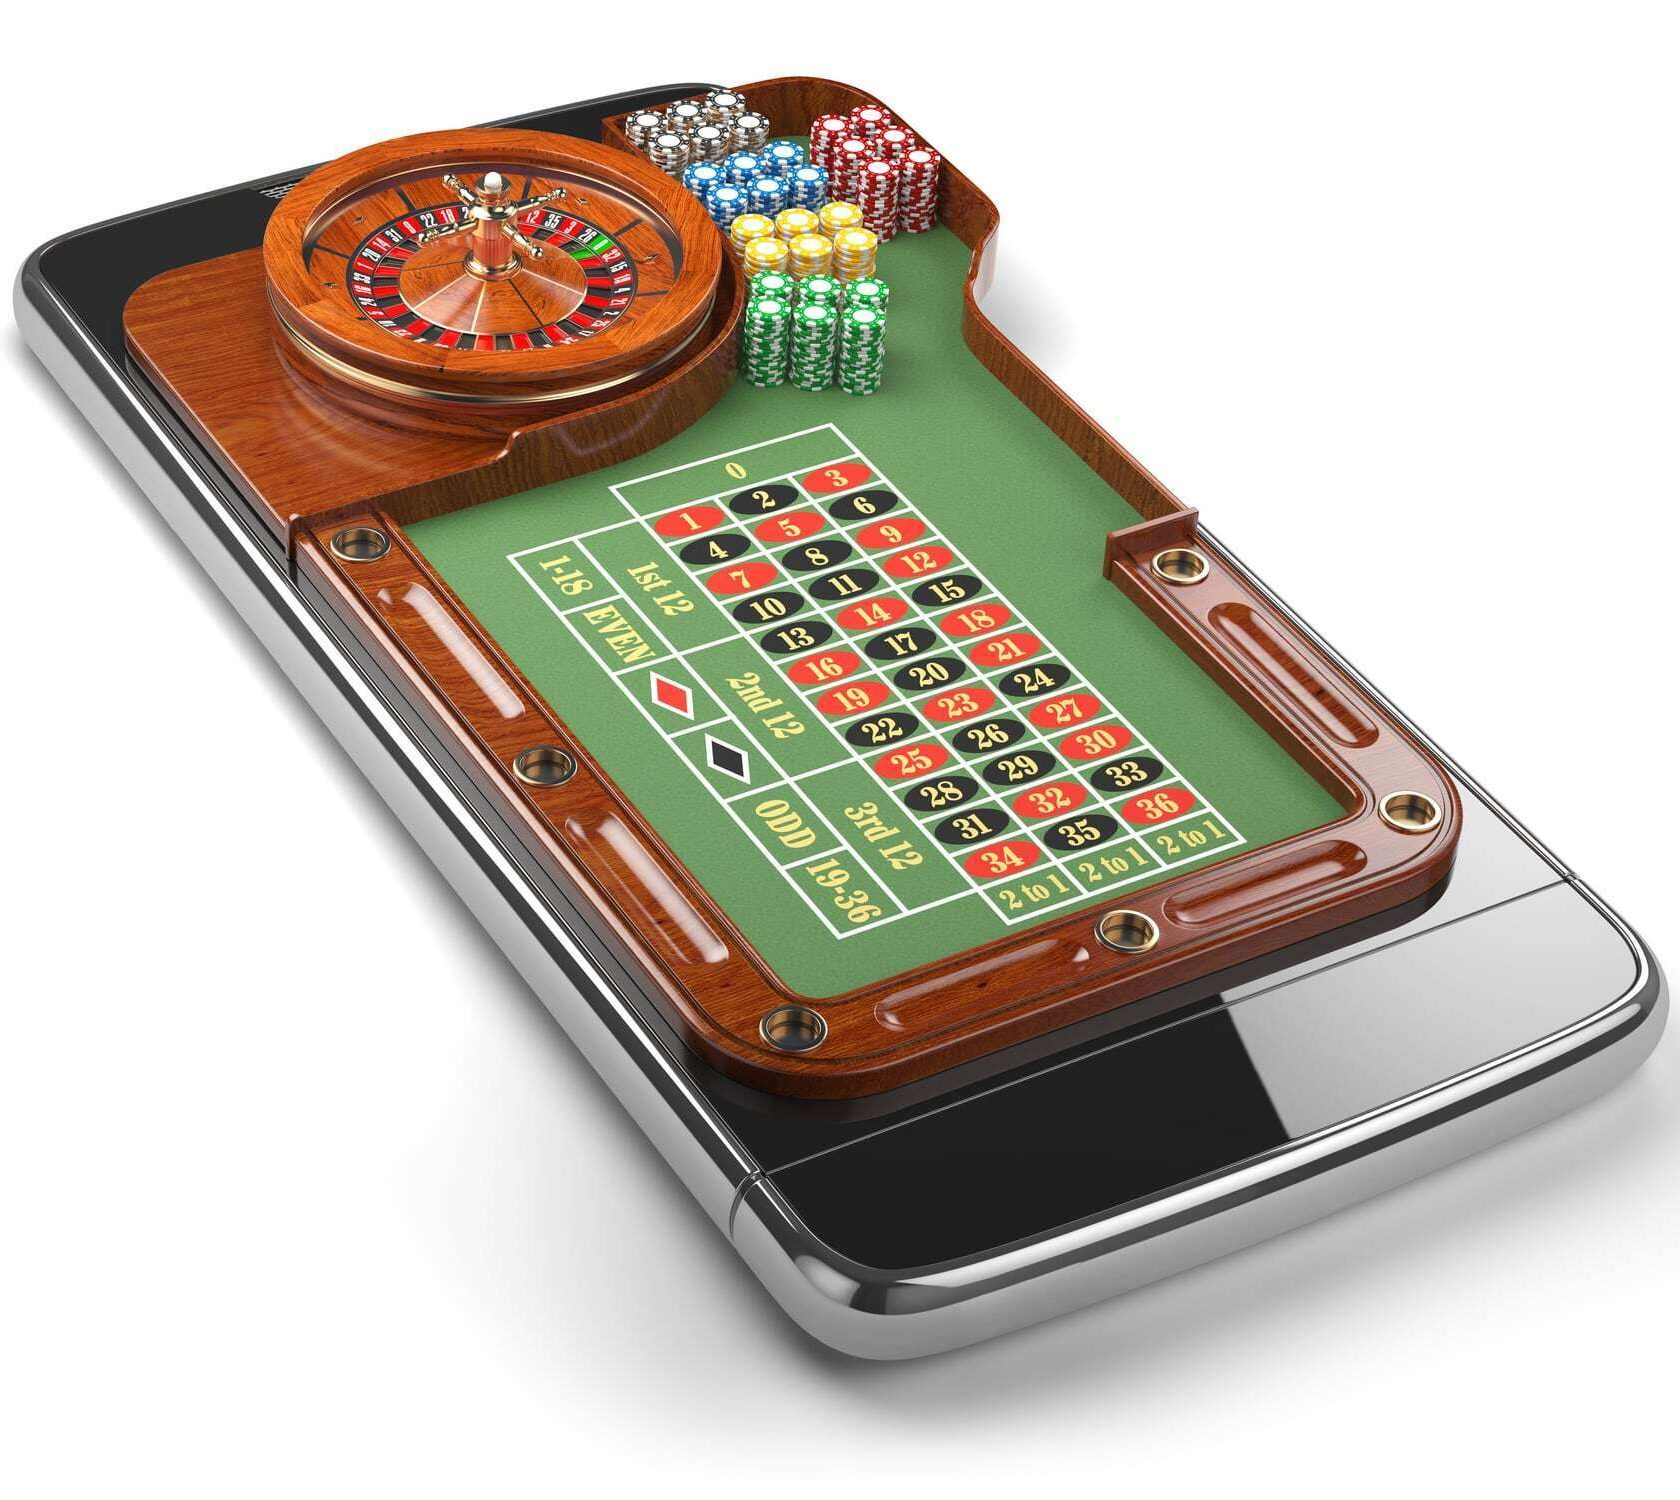 Roulette Table and Roulette Wheel on a Mobile